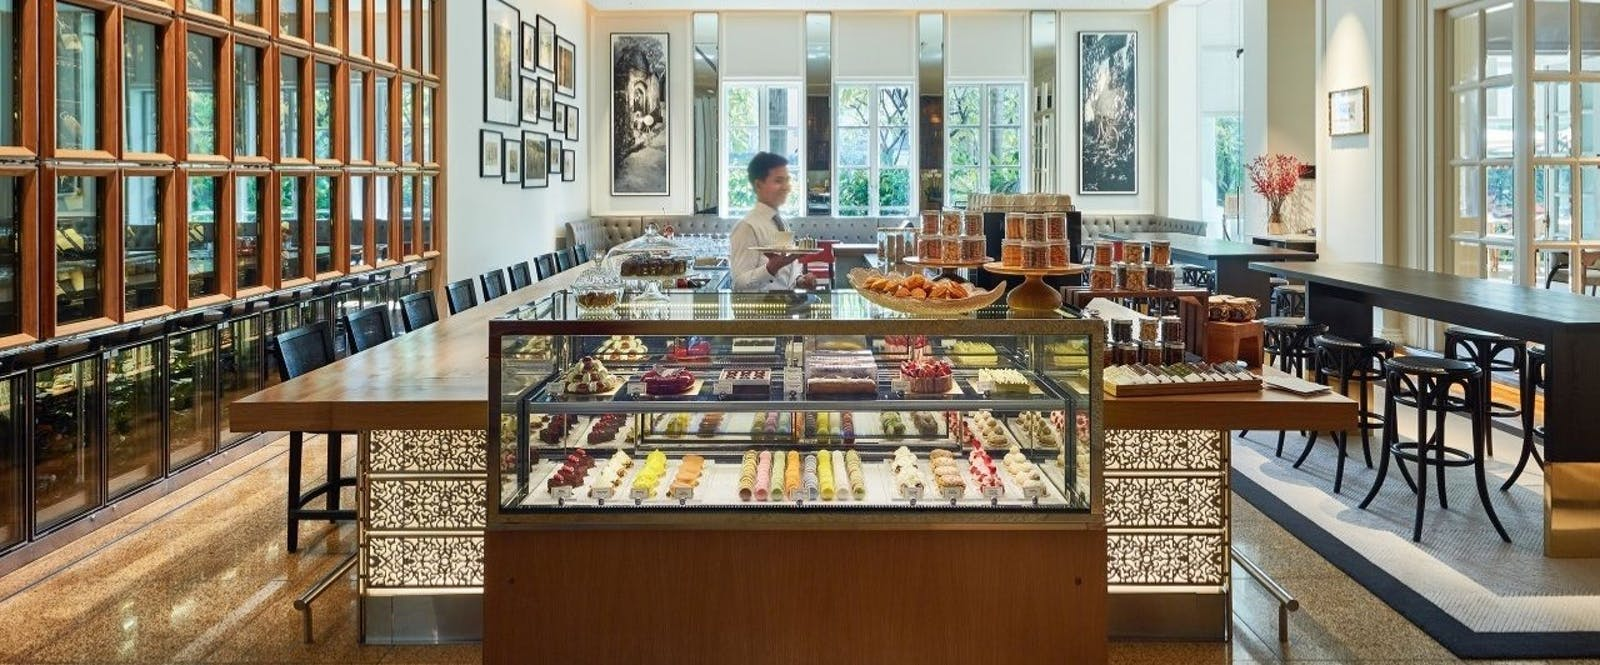 The Pastry Boutique at Park Hyatt Saigon, Vietnam